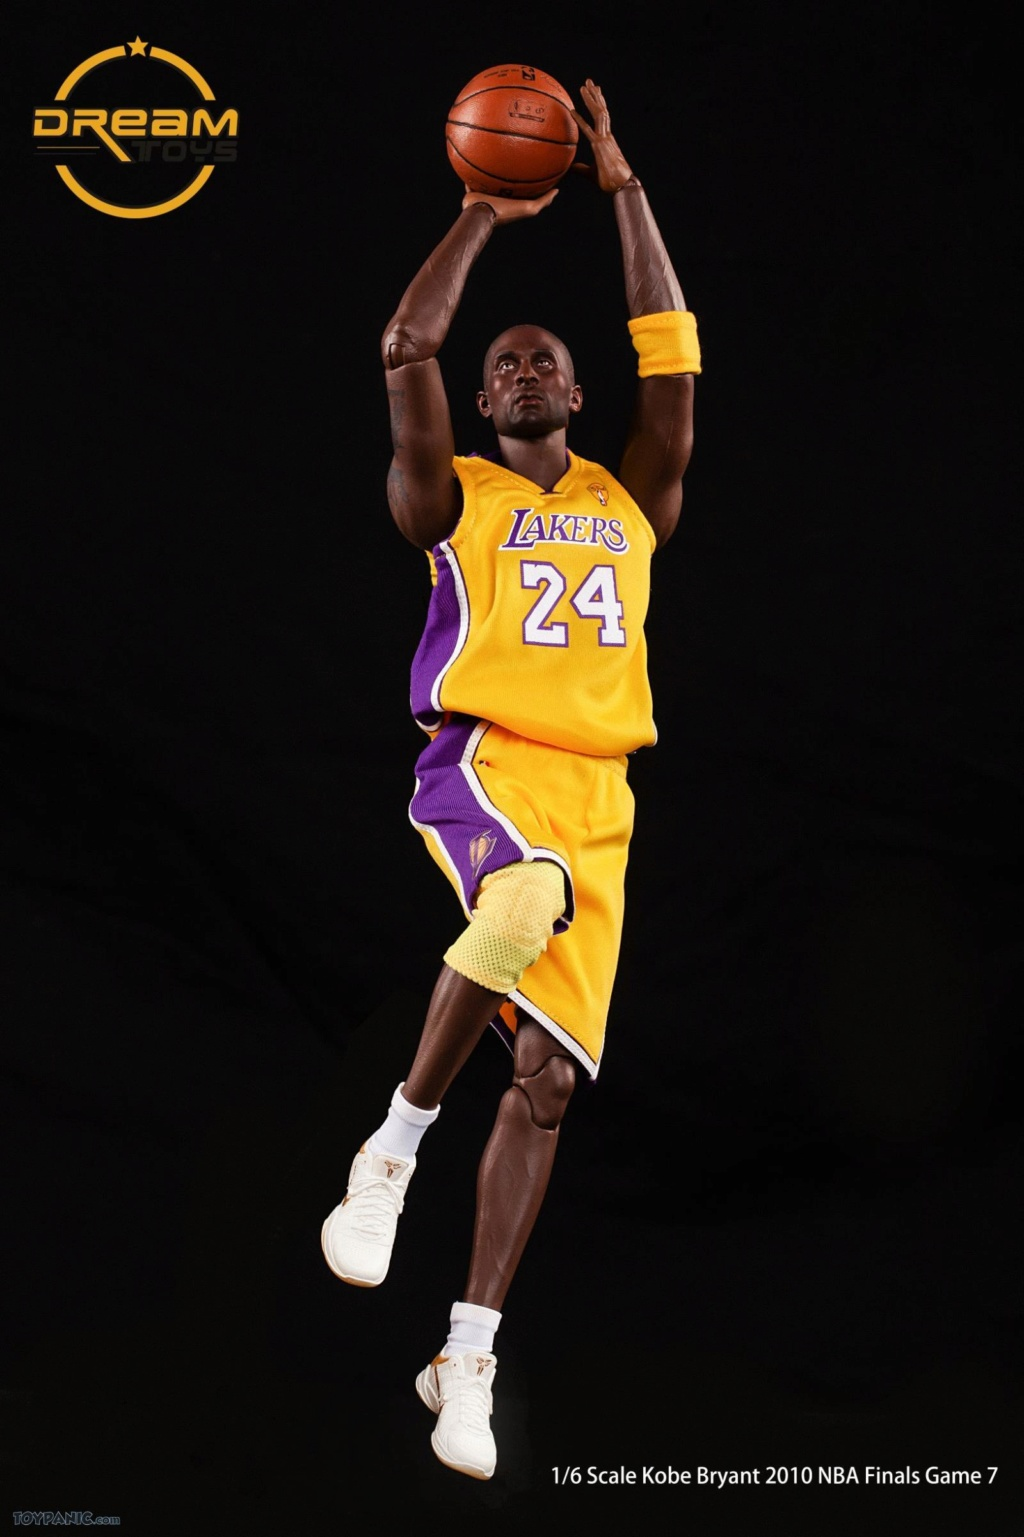 athlete - NEW PRODUCT: DreamToys: NBA Finals Jordan, Bryant, & James 1/6 scale action figures 11420234